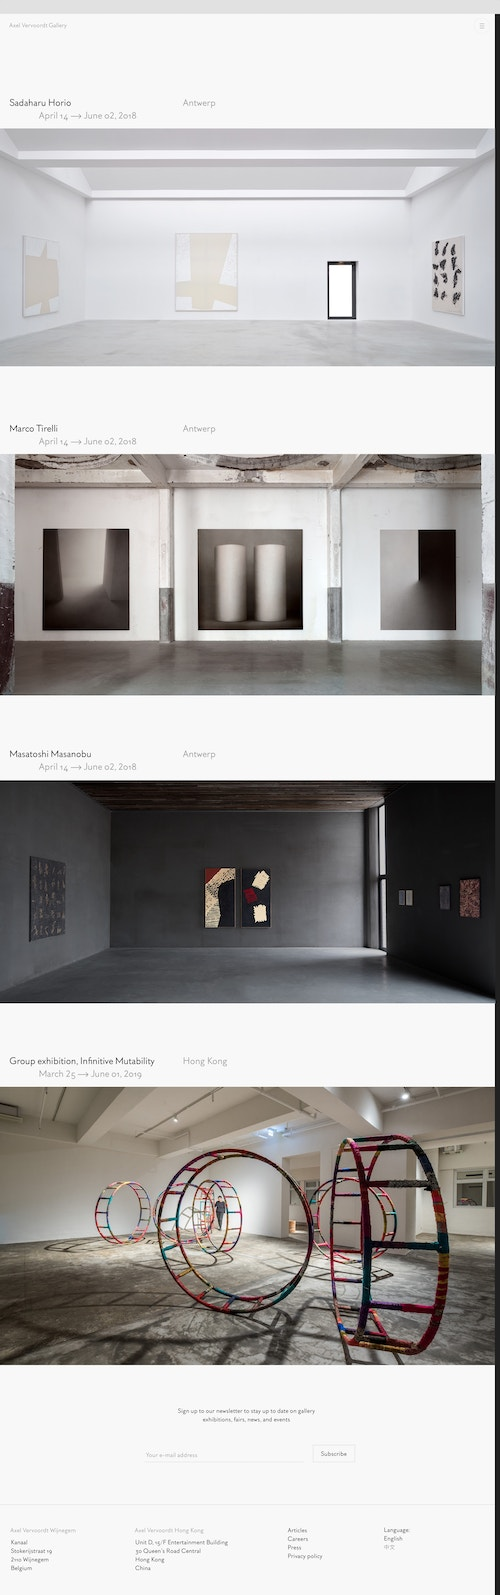 Screenshot of the homepage of the Axel Vervoordt Gallery website